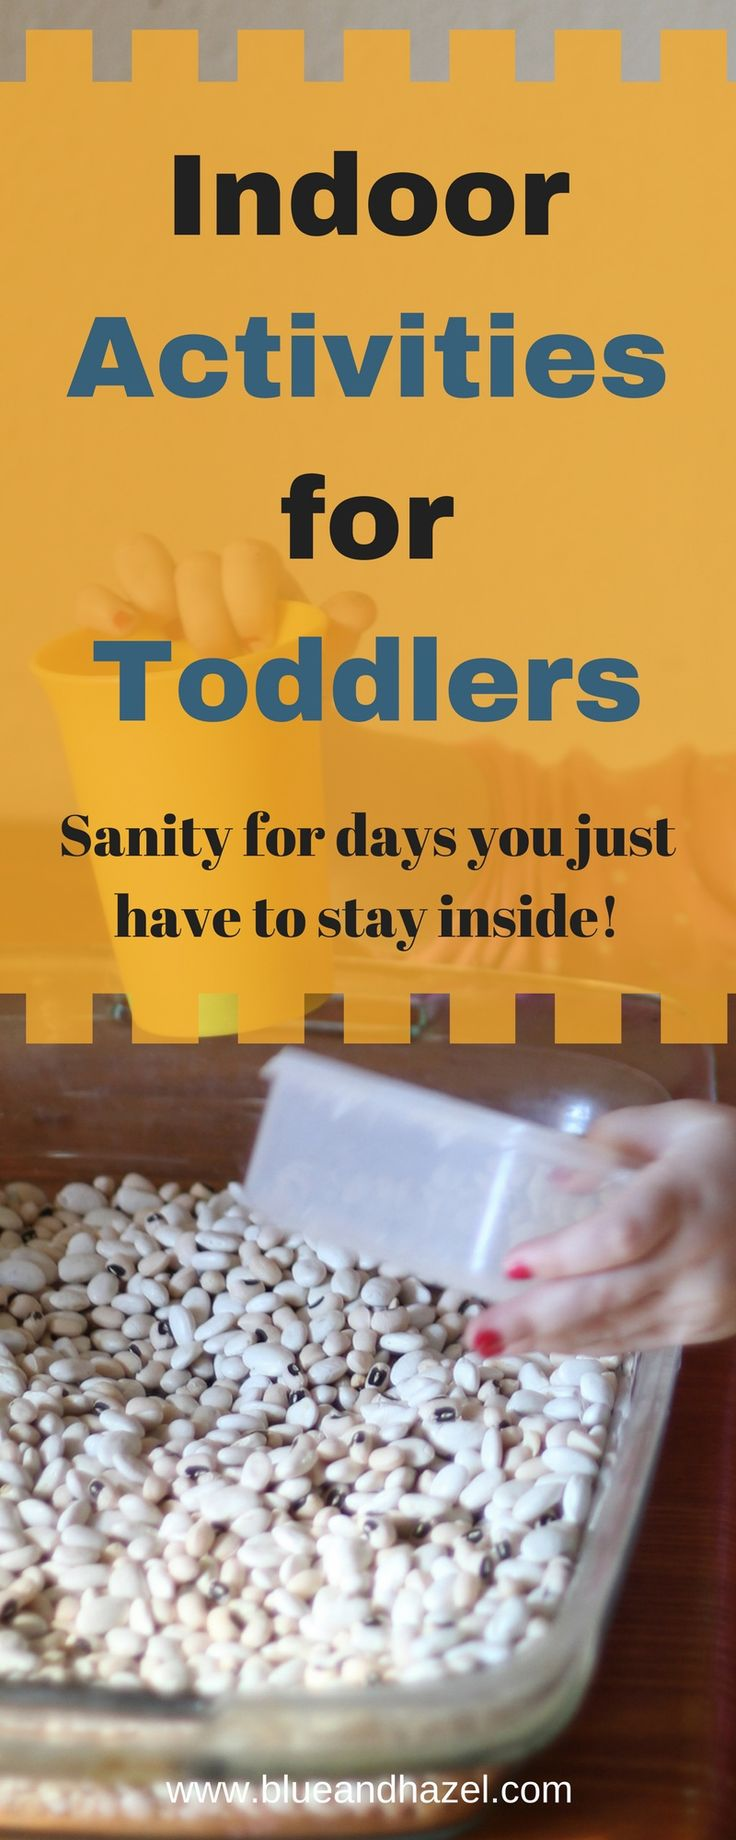 Need some Indoor Activities for your toddler? Here are some great indoor play ideas that will keep a toddler busy and entertained. Find things for quiet time, as well as ways to get out energy at home. #toddler #toddleractivites #toddlerplay #mom #sahm #blueandhazel